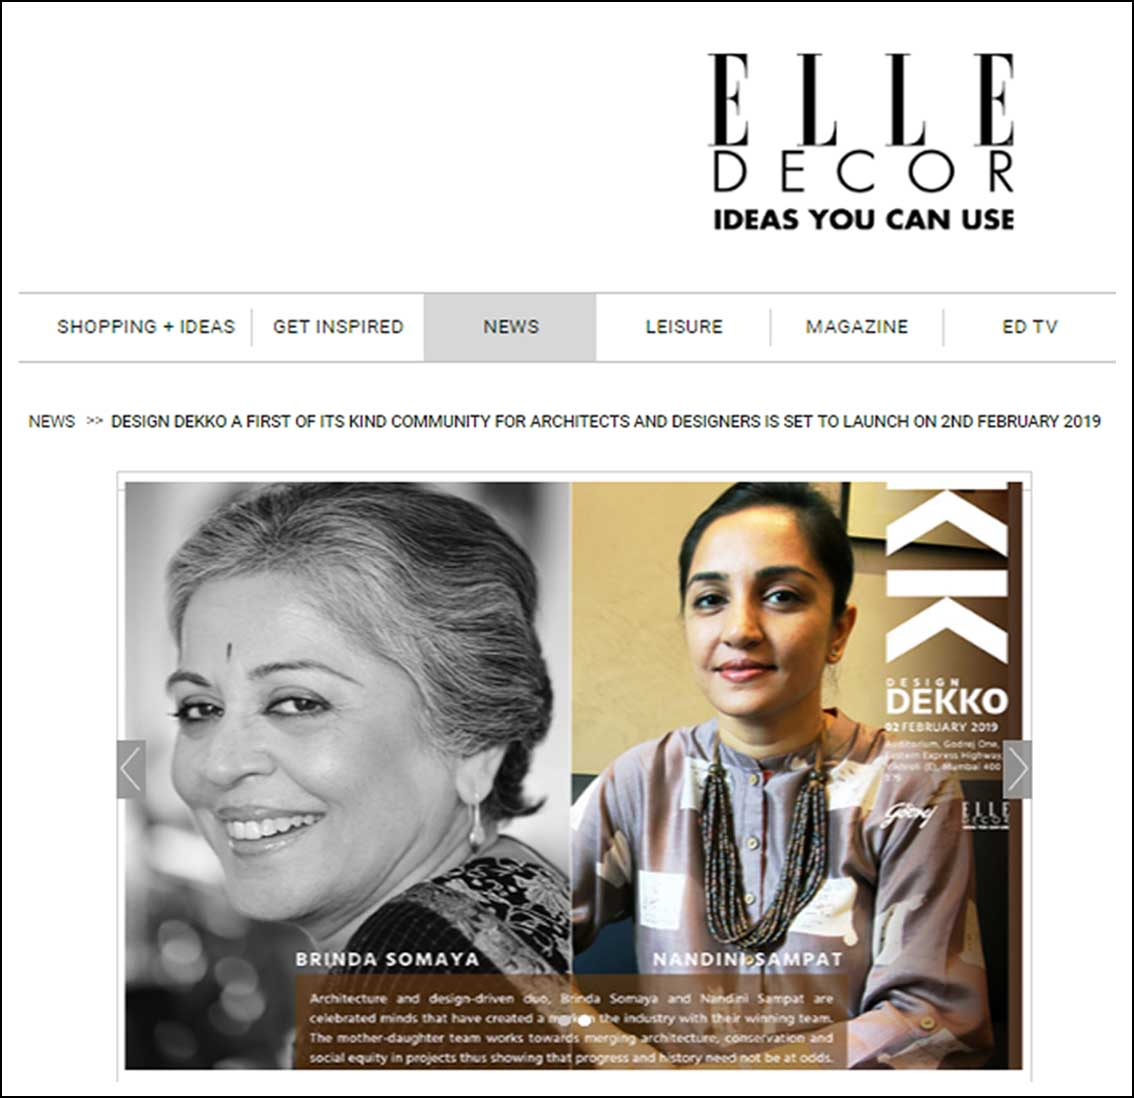 Design Dekko a first of its kind community for architects and designers is set to launch , ELLE Decor - February 2019